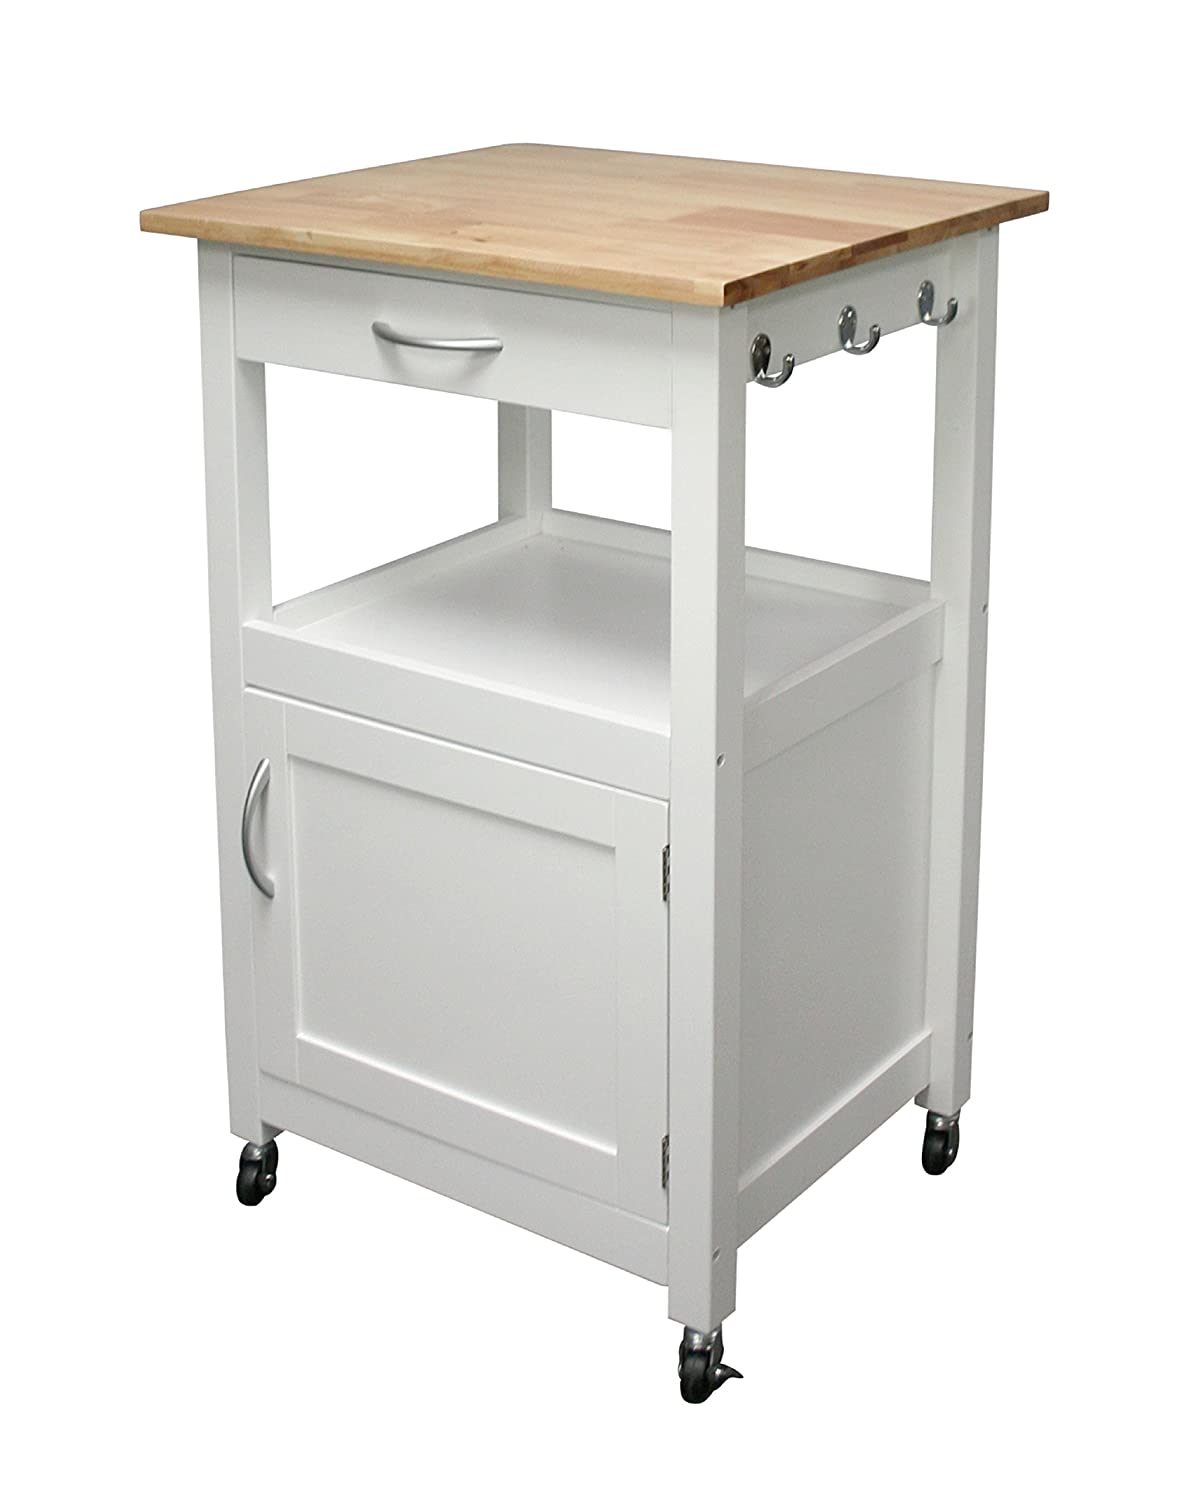 Exceptionnel Amazon.com   EHemco Kitchen Island Cart Natural Wood Top With White Base  (white)   Kitchen Islands U0026 Carts